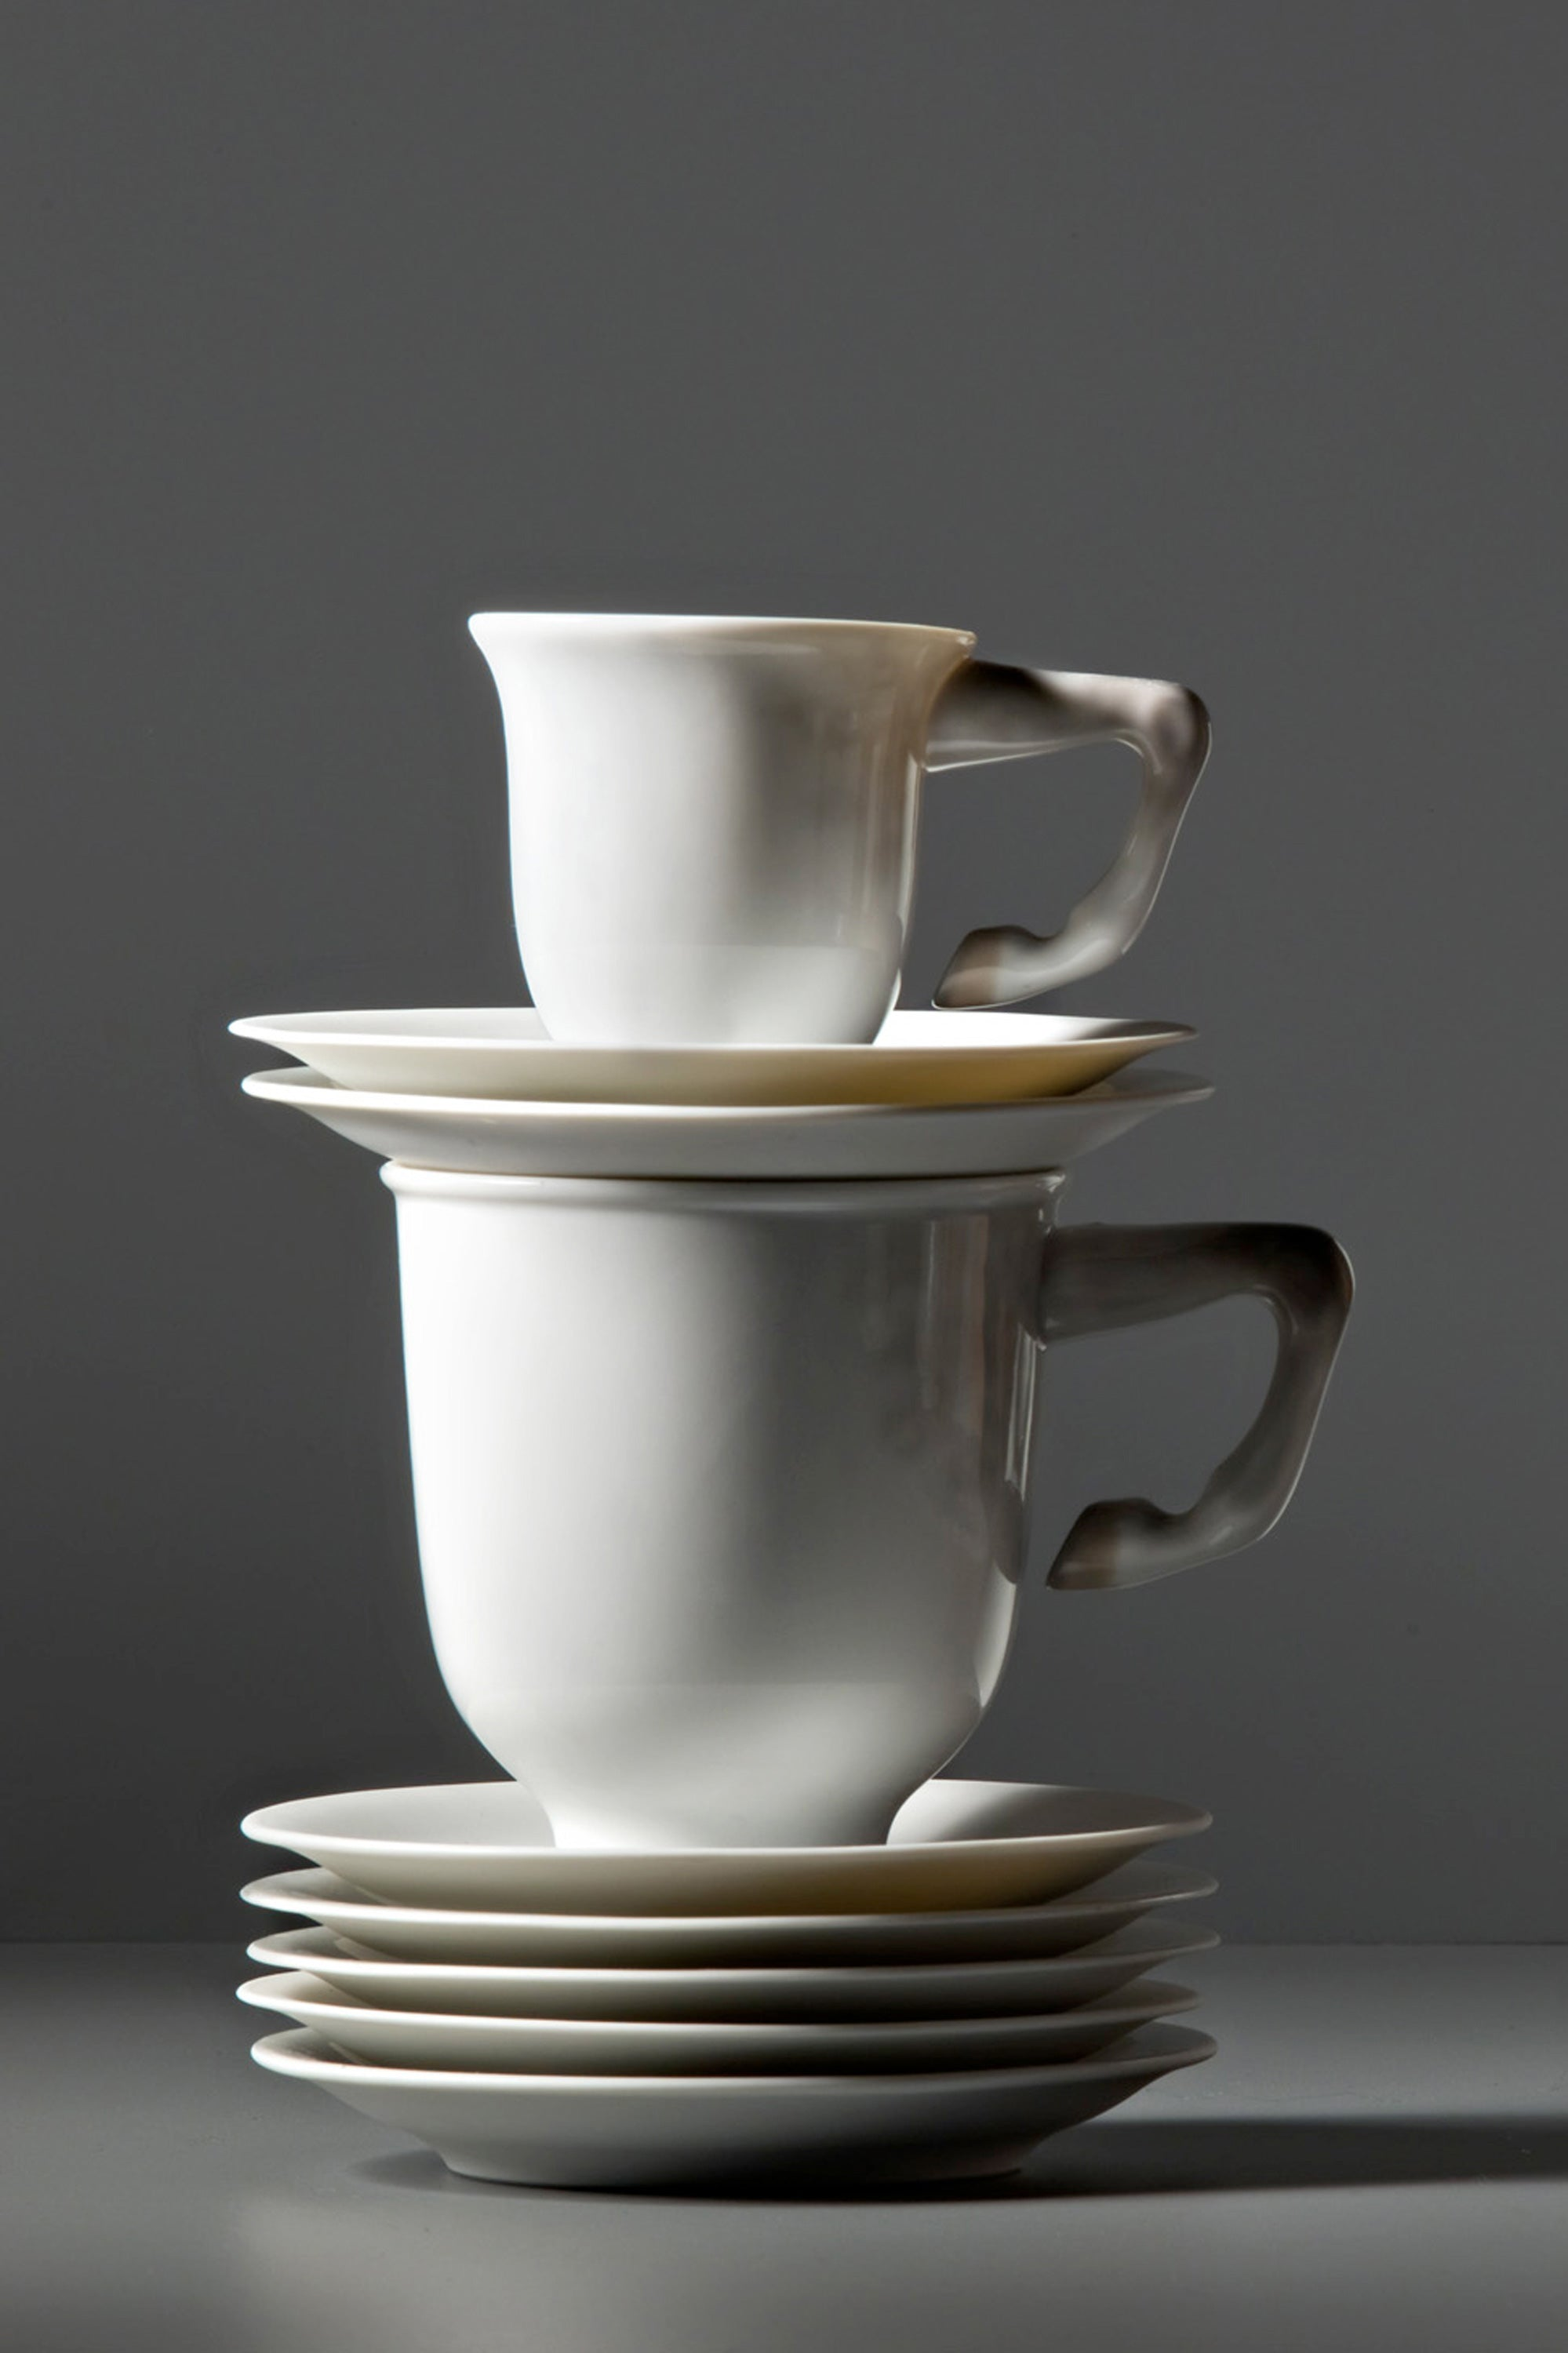 Lladro Equus Tableware Designed by London Based Studio Bodo Sperlein